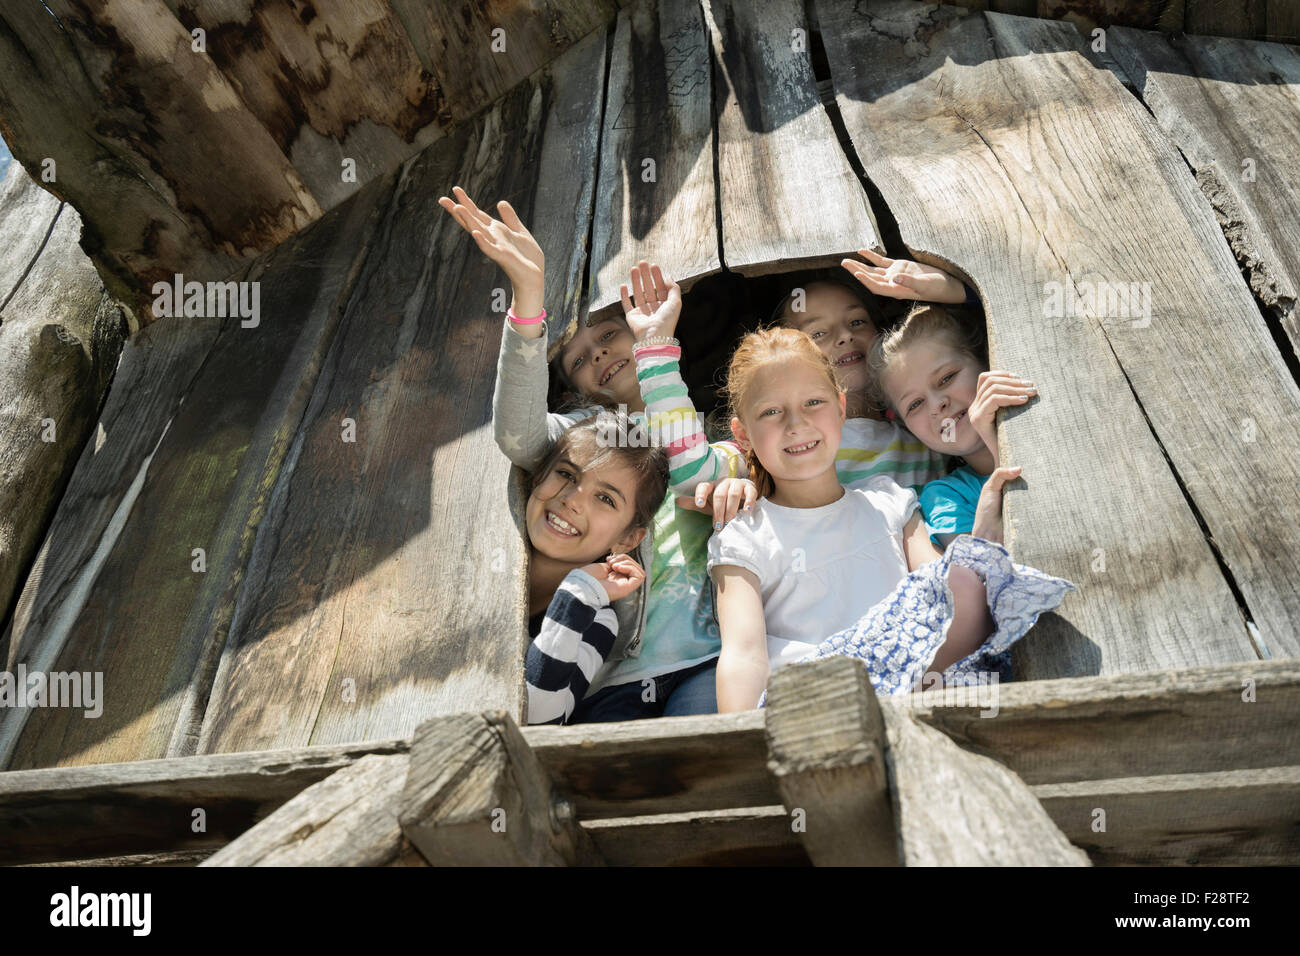 Girls playing on tree house in playground, Munich, Bavaria, Germany - Stock Image